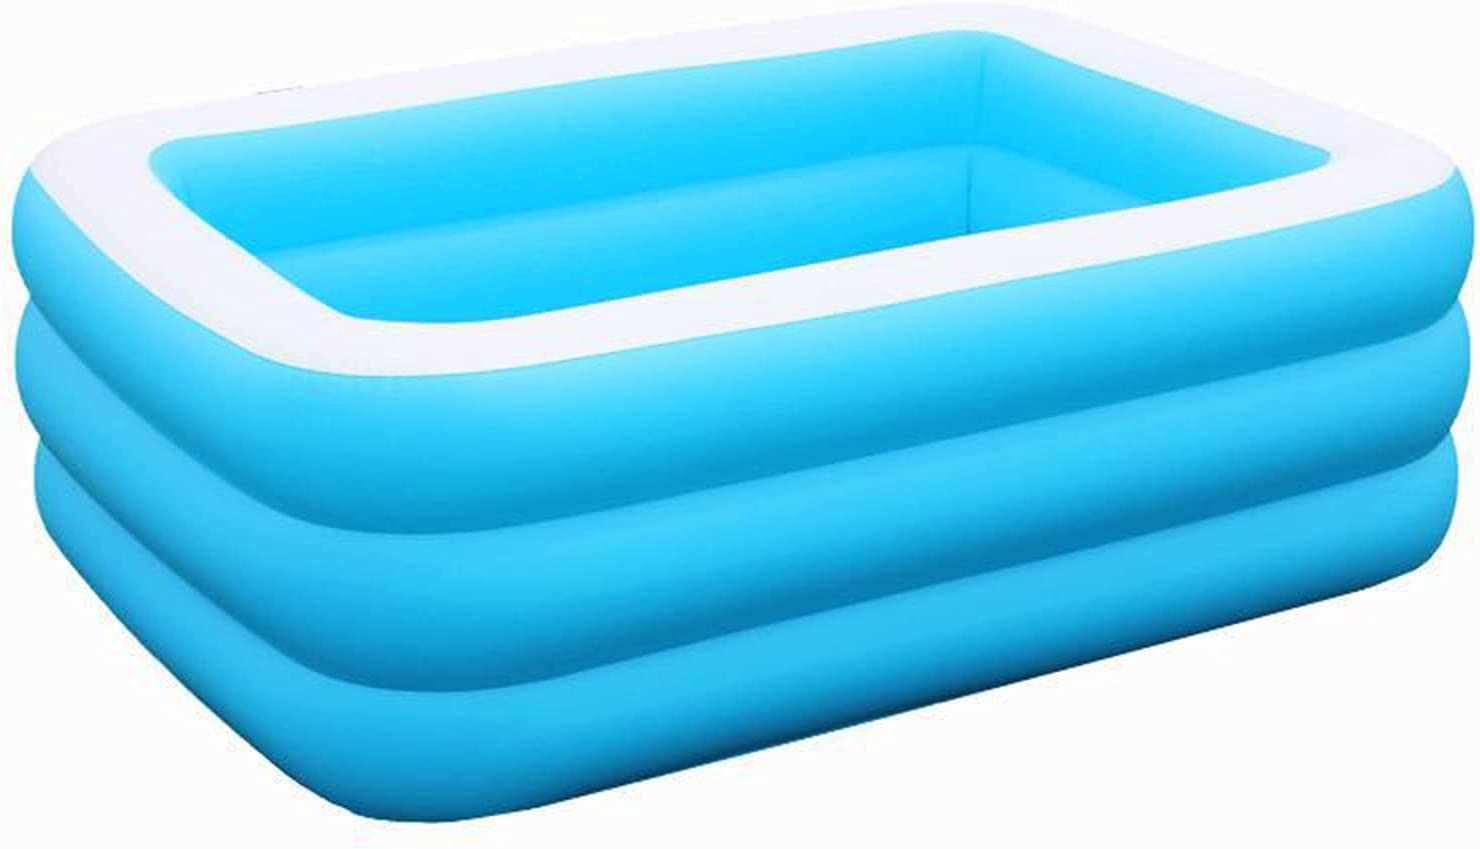 GFQTTY Multi-Size Home Use Inflatable 3 Lay Pool Large Max 80% OFF Swimming unisex